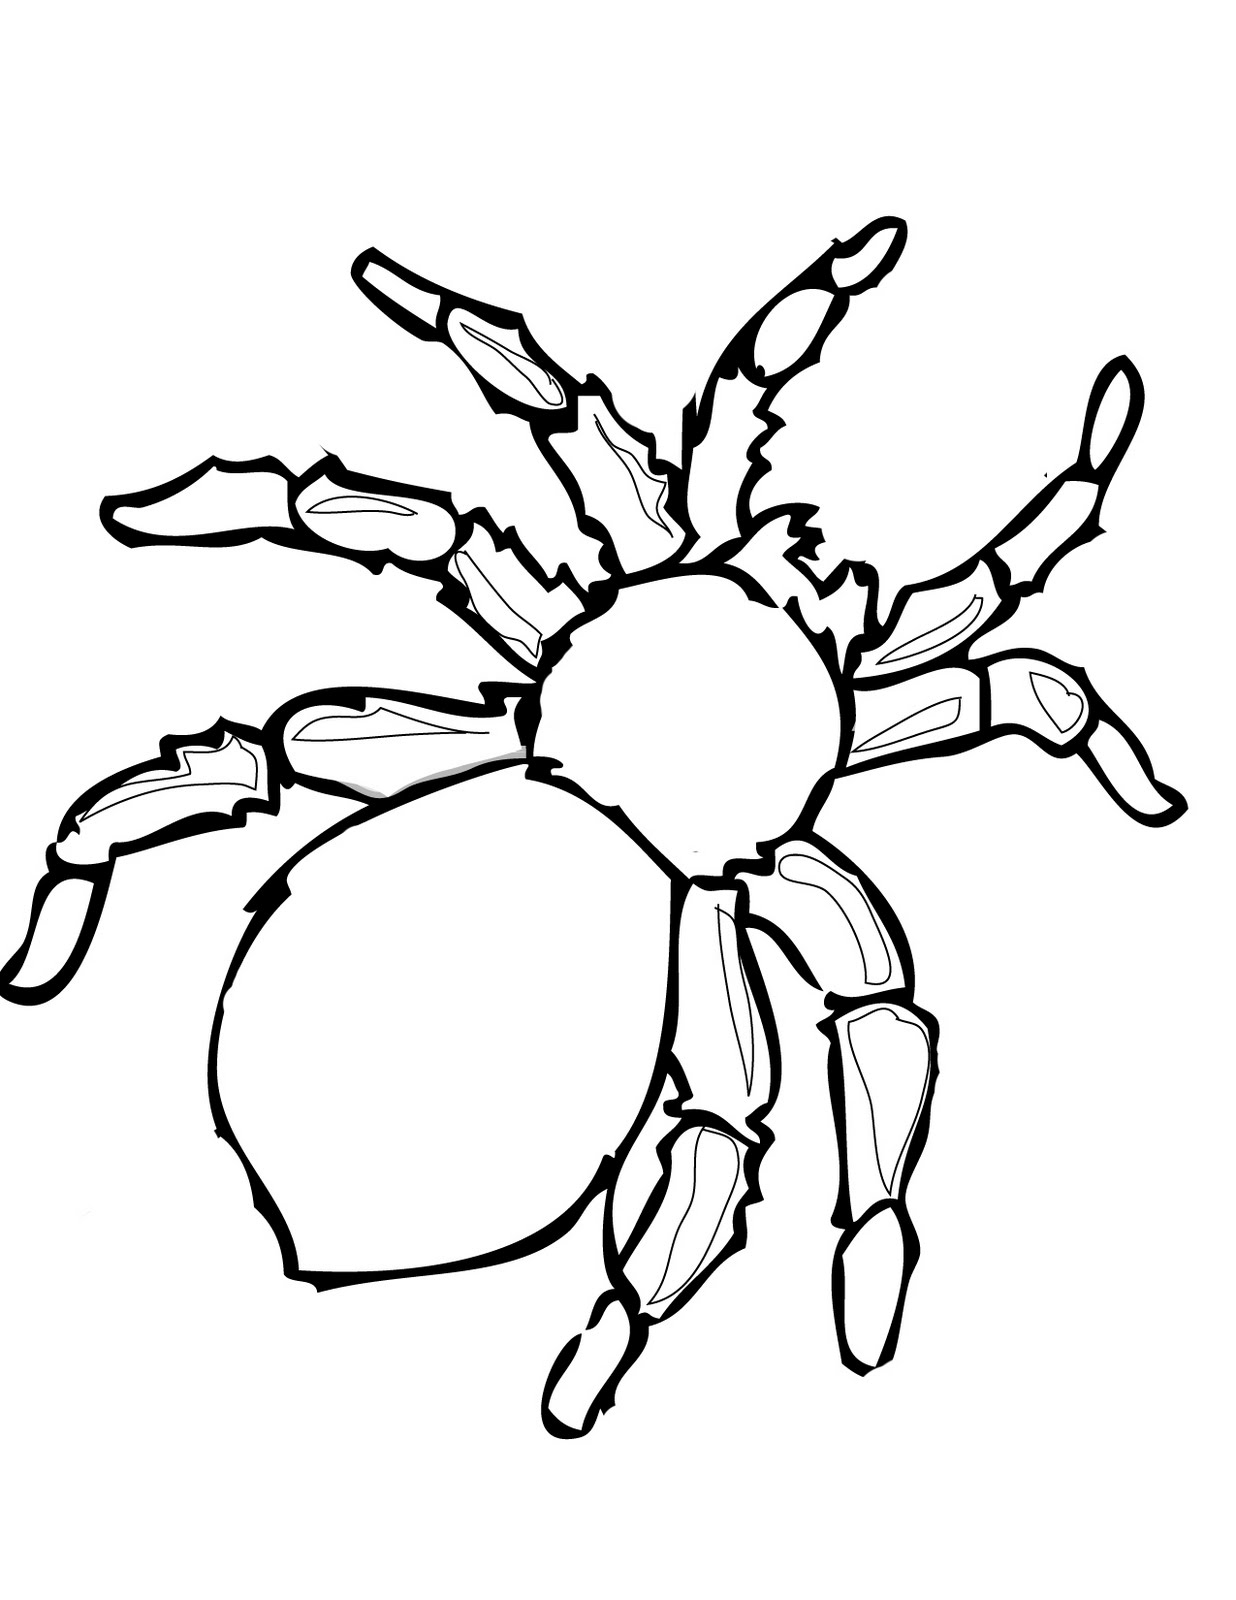 coloring pages tarantula - photo#20